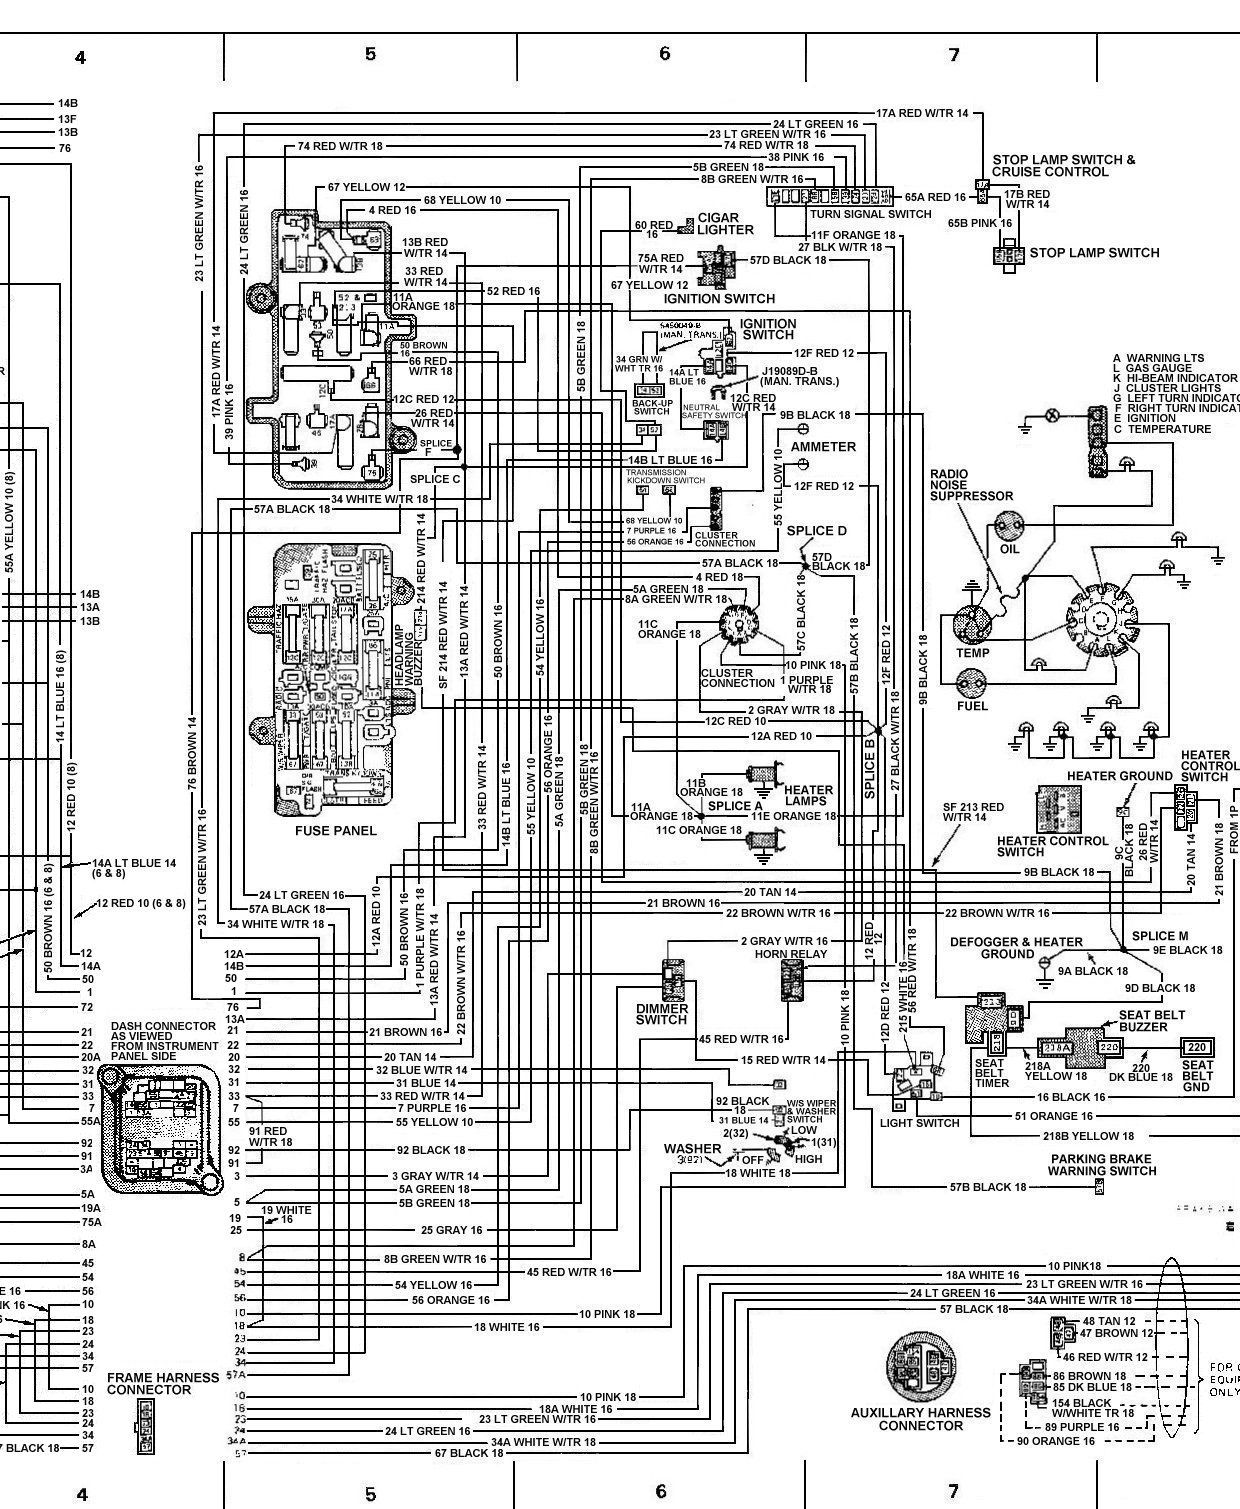 kia sportage radio wiring diagram 2002 kia sportage ignition wiring diagram pin by angel car on 2017 cars reviews | 2004 nissan frontier, diagram, chevy avalanche